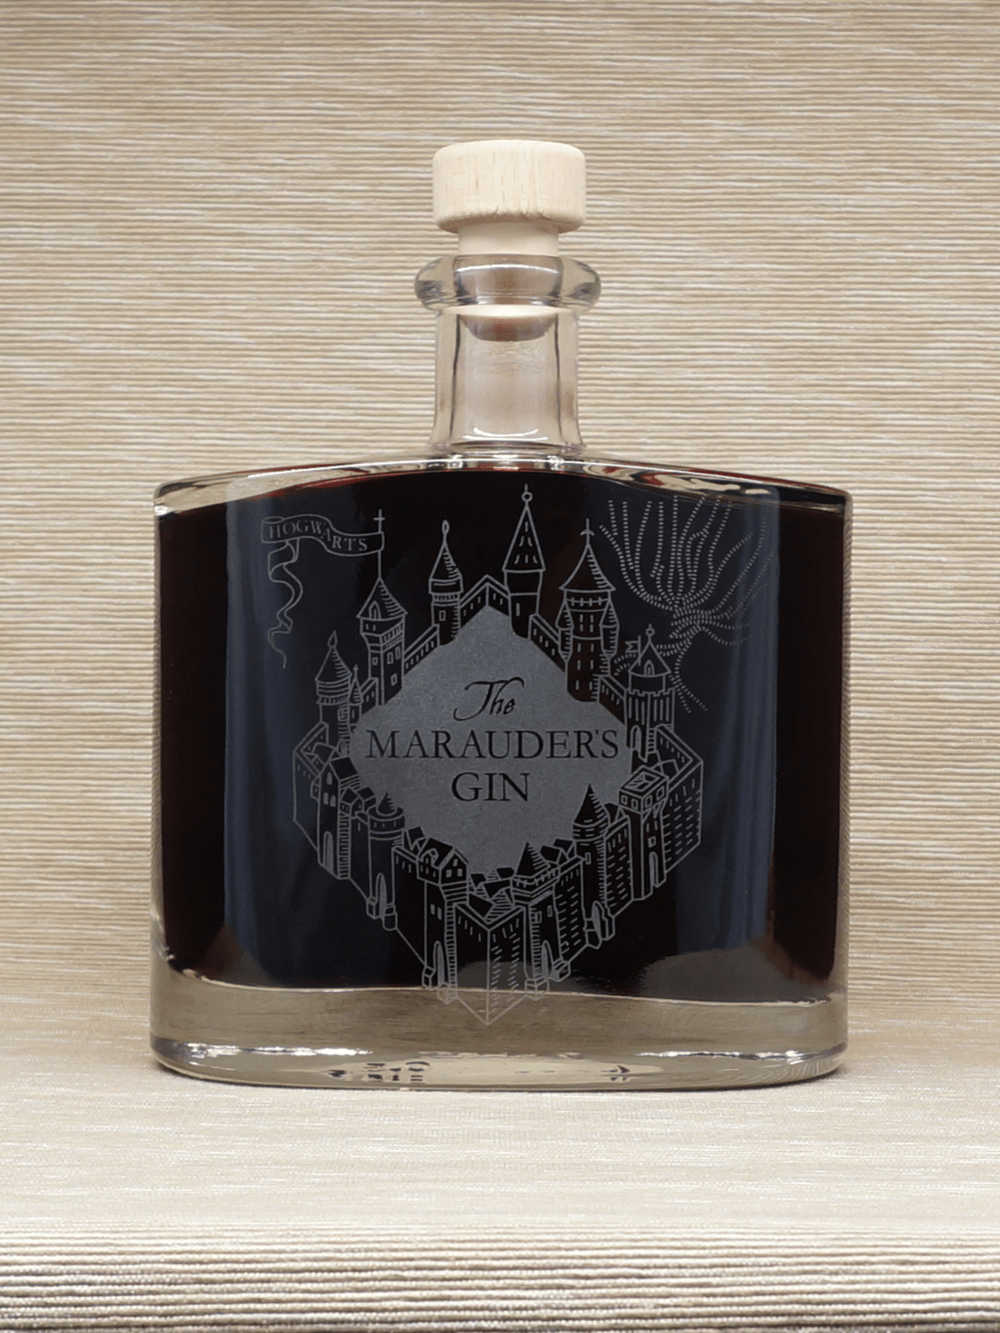 Blackberry whisky in Marauder's Gin bottle